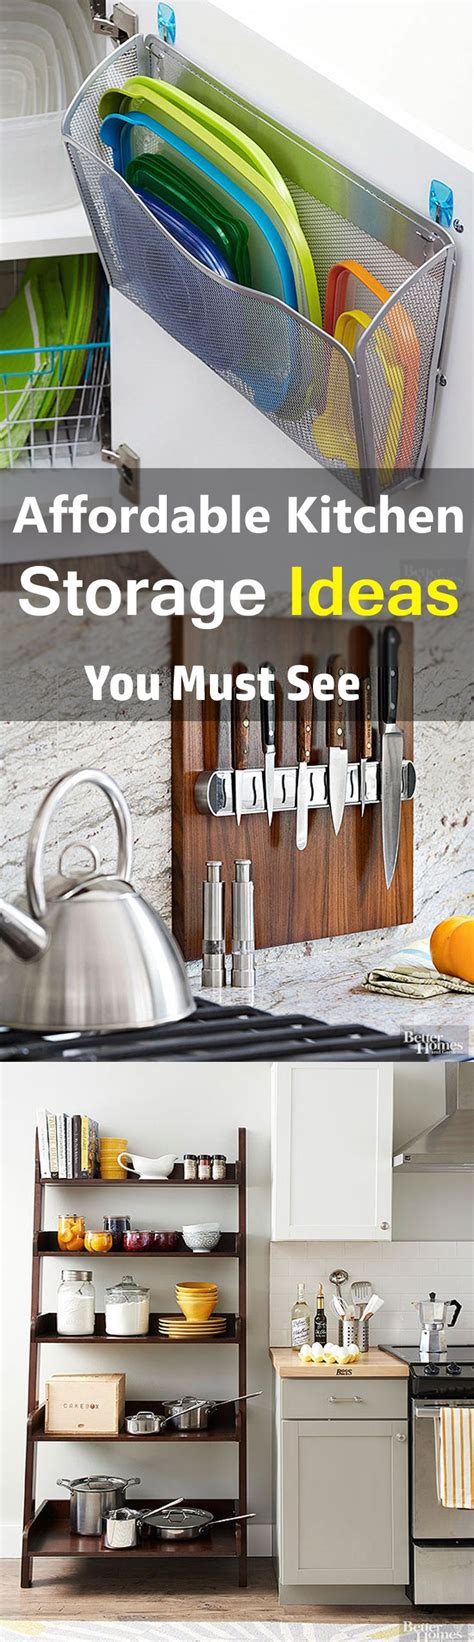 organized kitchen ideas affordable kitchen storage ideas to organize kitchen well